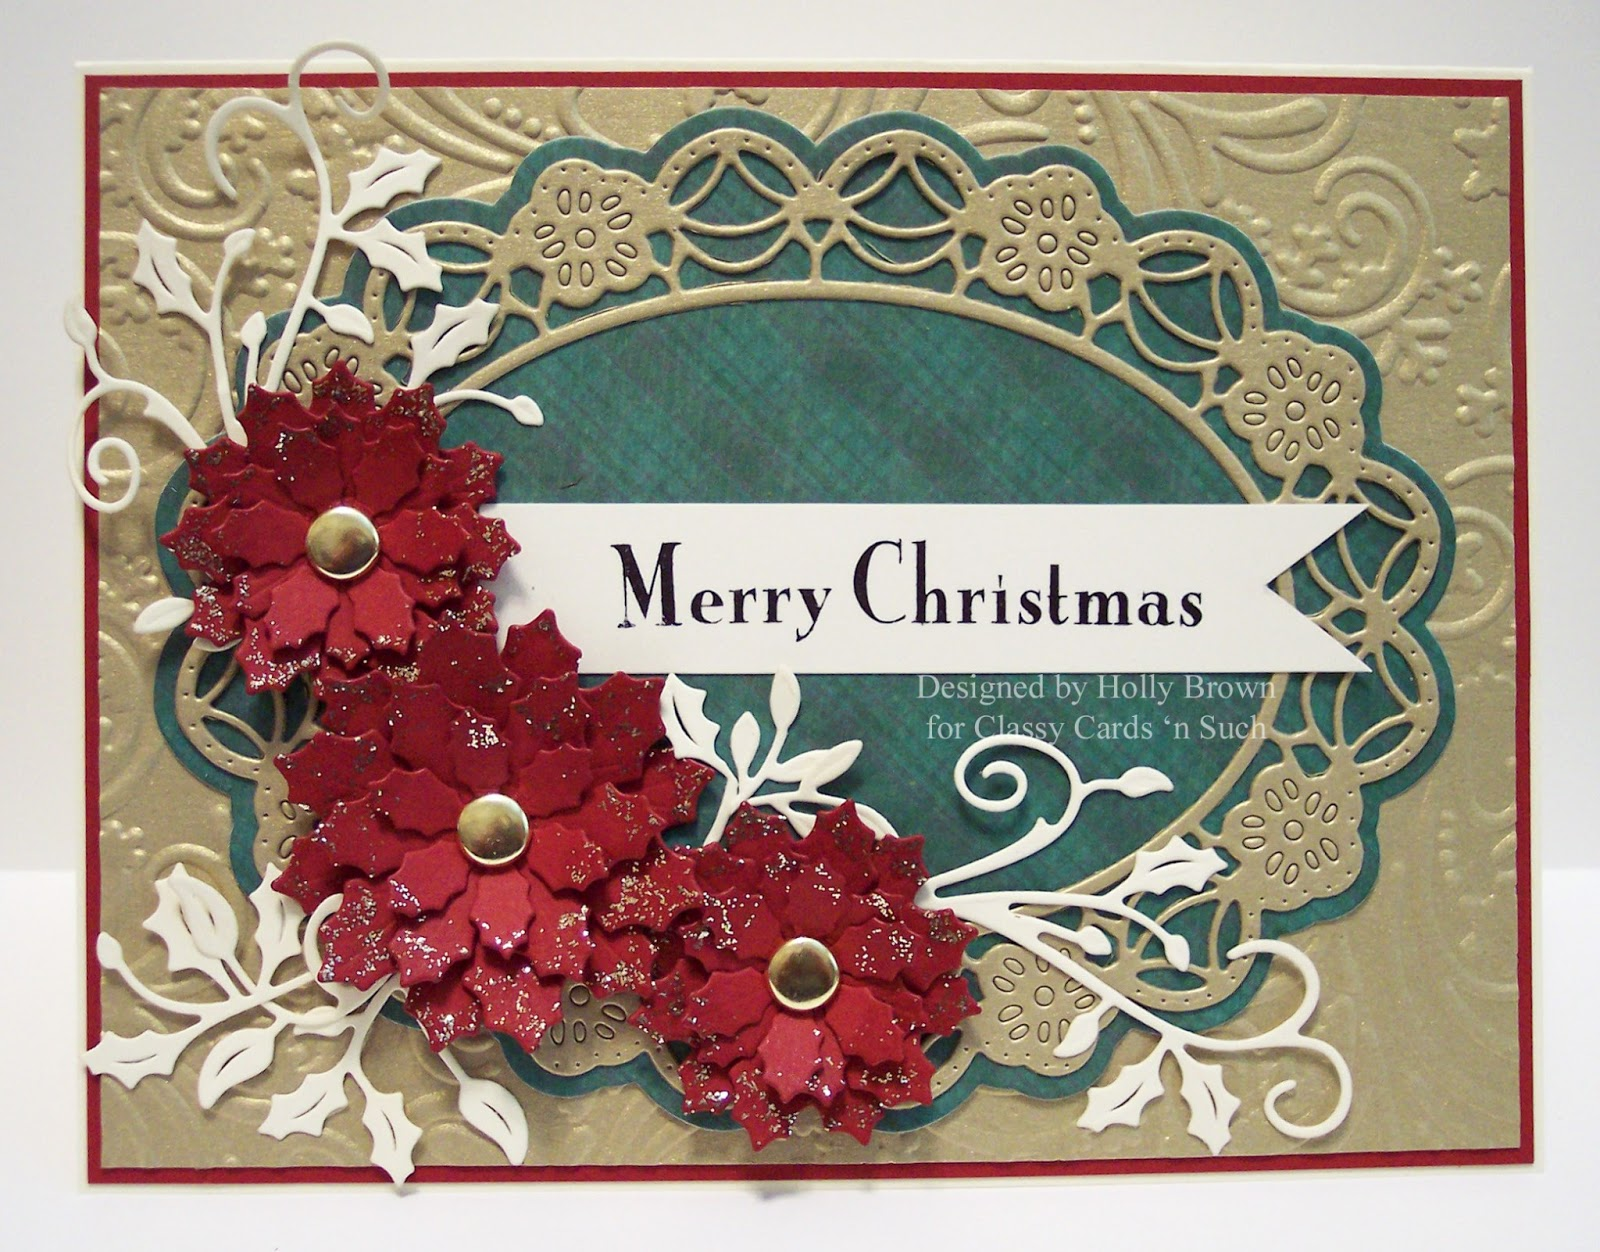 Classy cards n such gold poinsettia christmas ive used a lot of products from classy cards n such on this card so i will list them first and then go through the card making process with you m4hsunfo